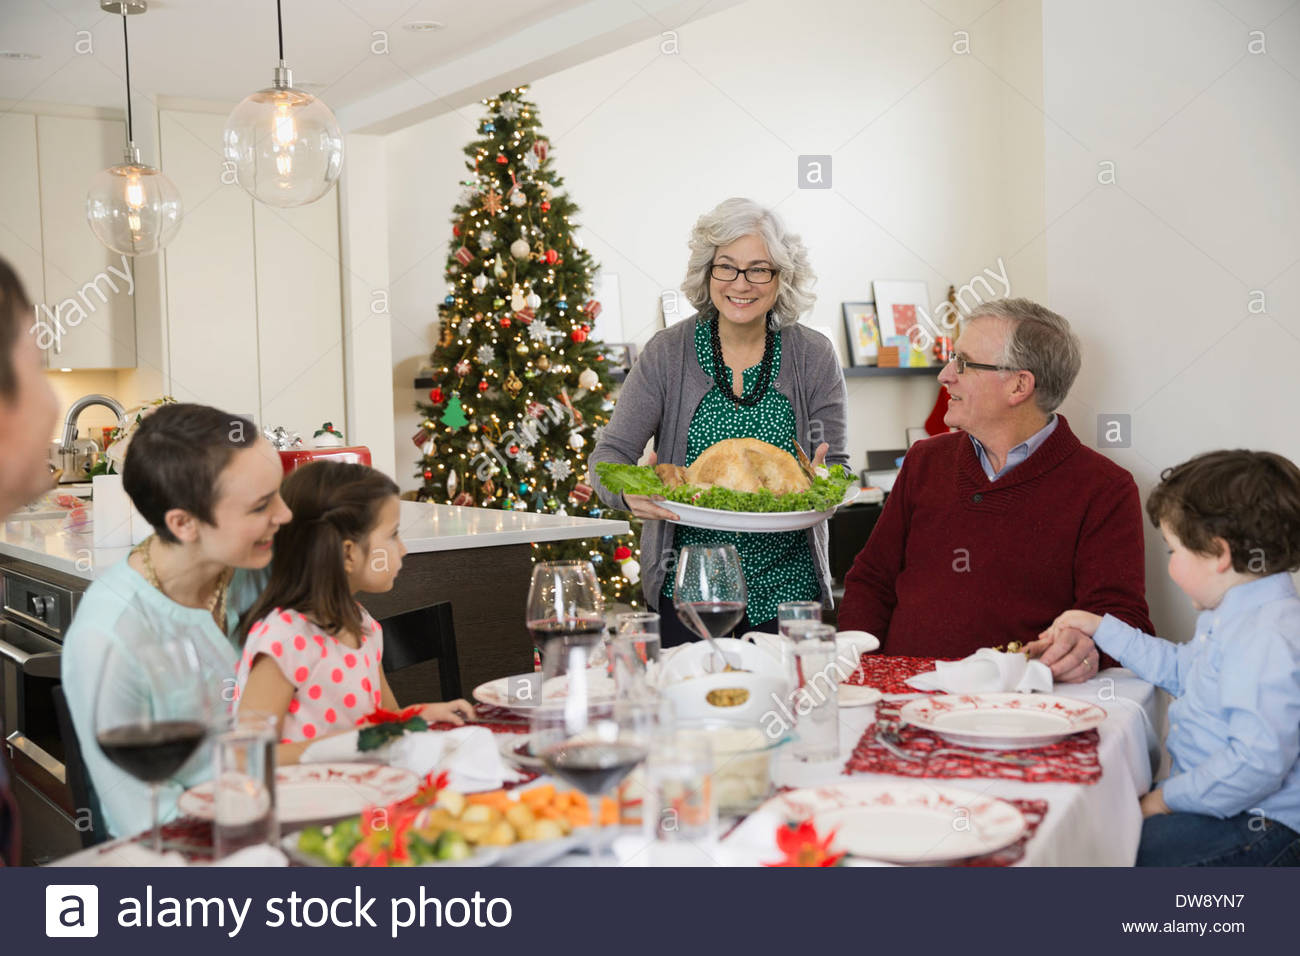 Grandmother serving turkey to family at Christmas dinner - Stock Image